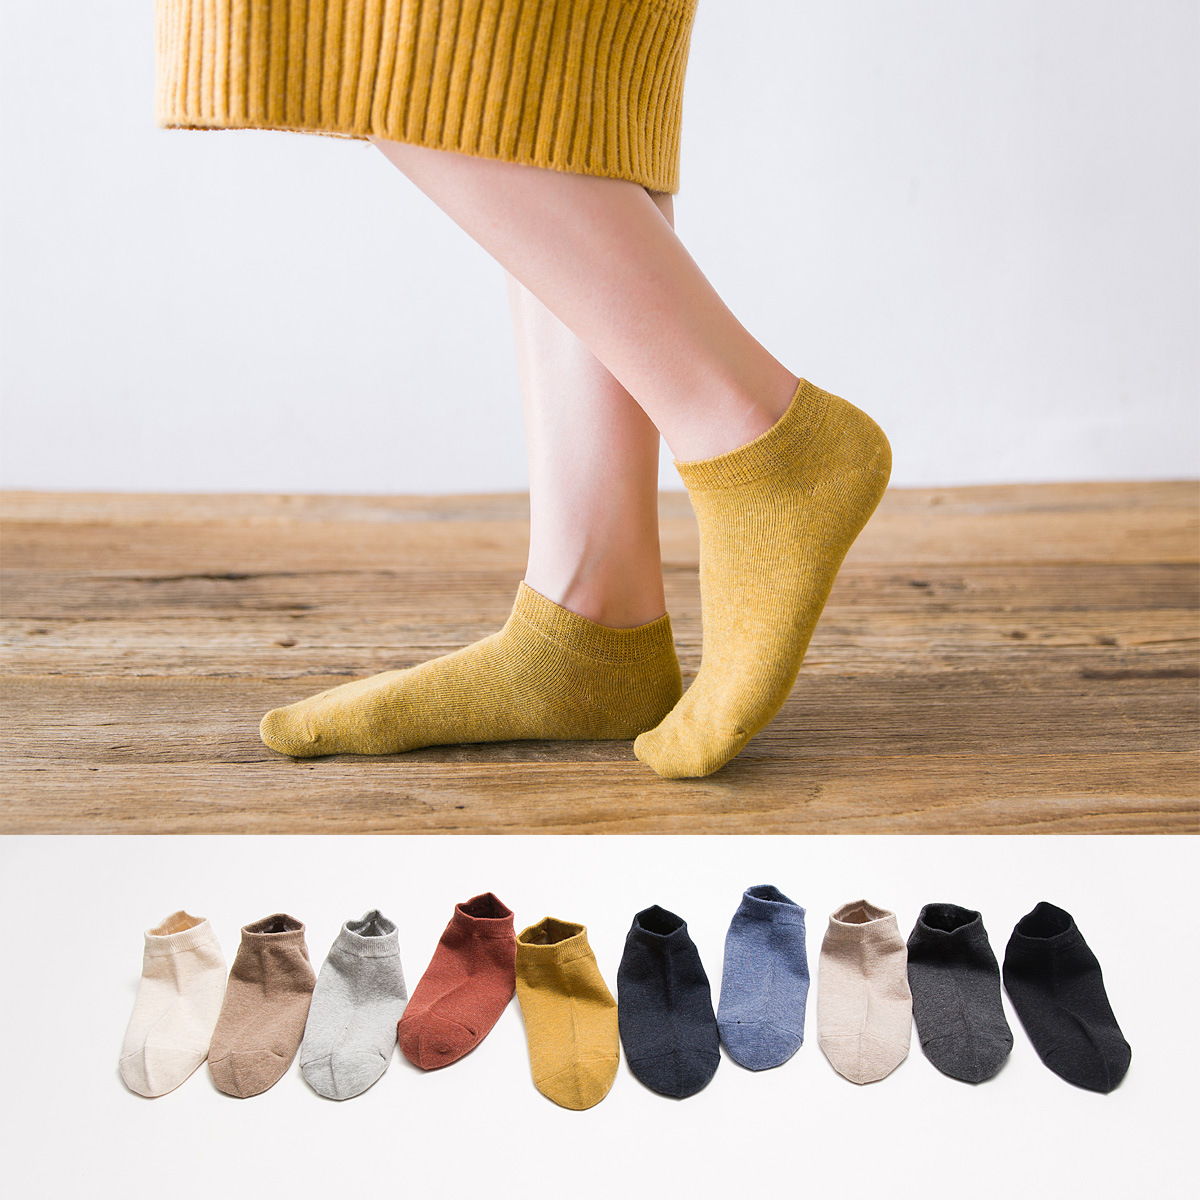 Hart cotton cotton women's overalls plain solid color socks cotton socks wholesale high-end color spinning manufacturers